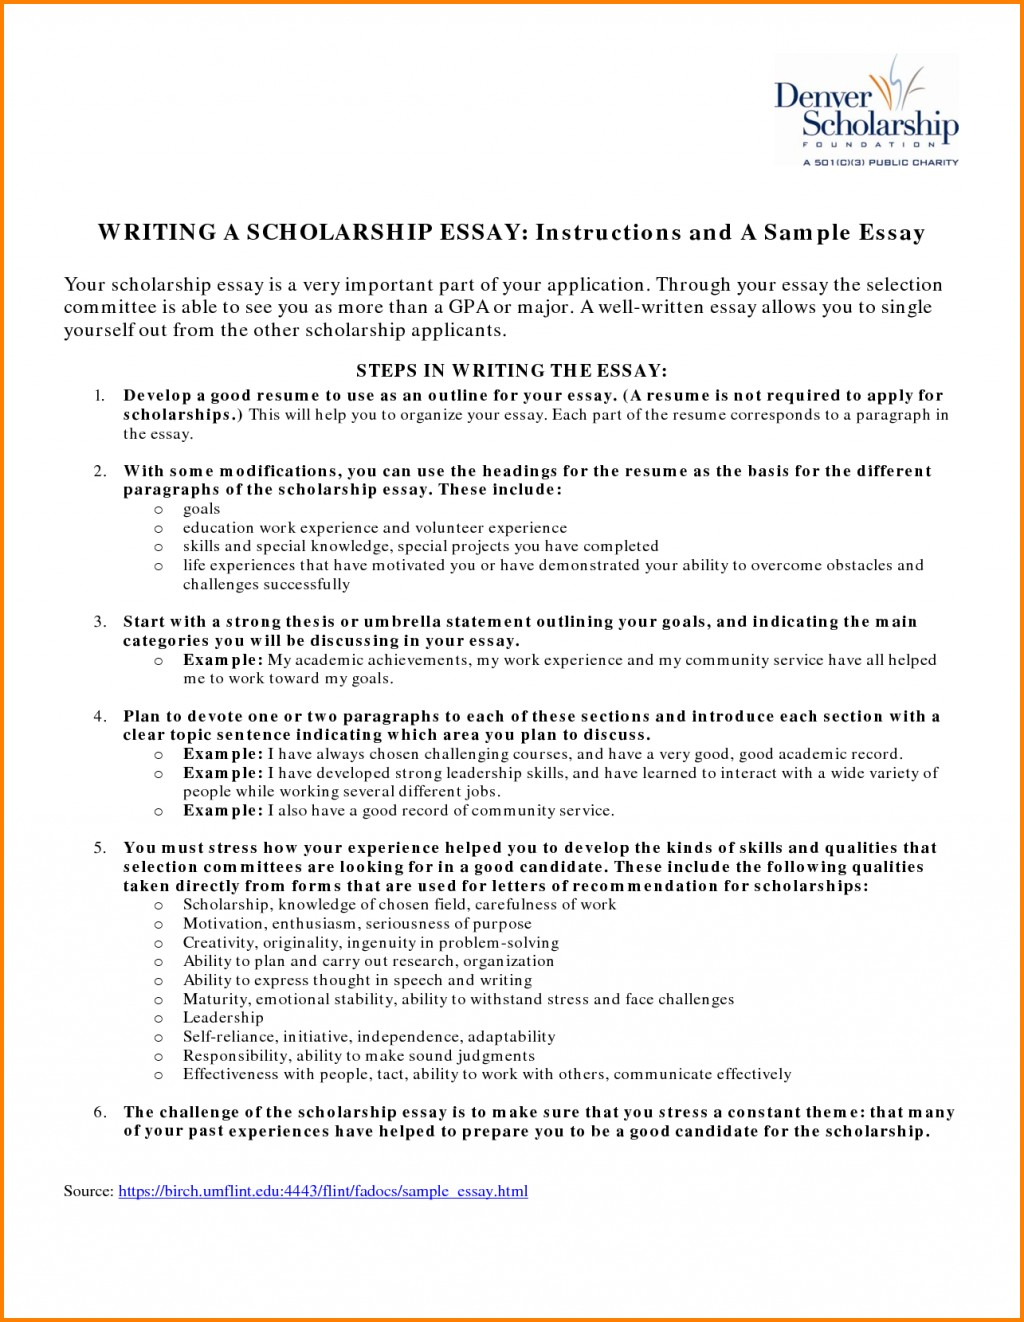 023 Inspiration Resume Examples For Scholarships With Nursing Scholarship Application Essay Example Fair In Sampl Nurse Staggering Mba Sample Tips College Ideas Large